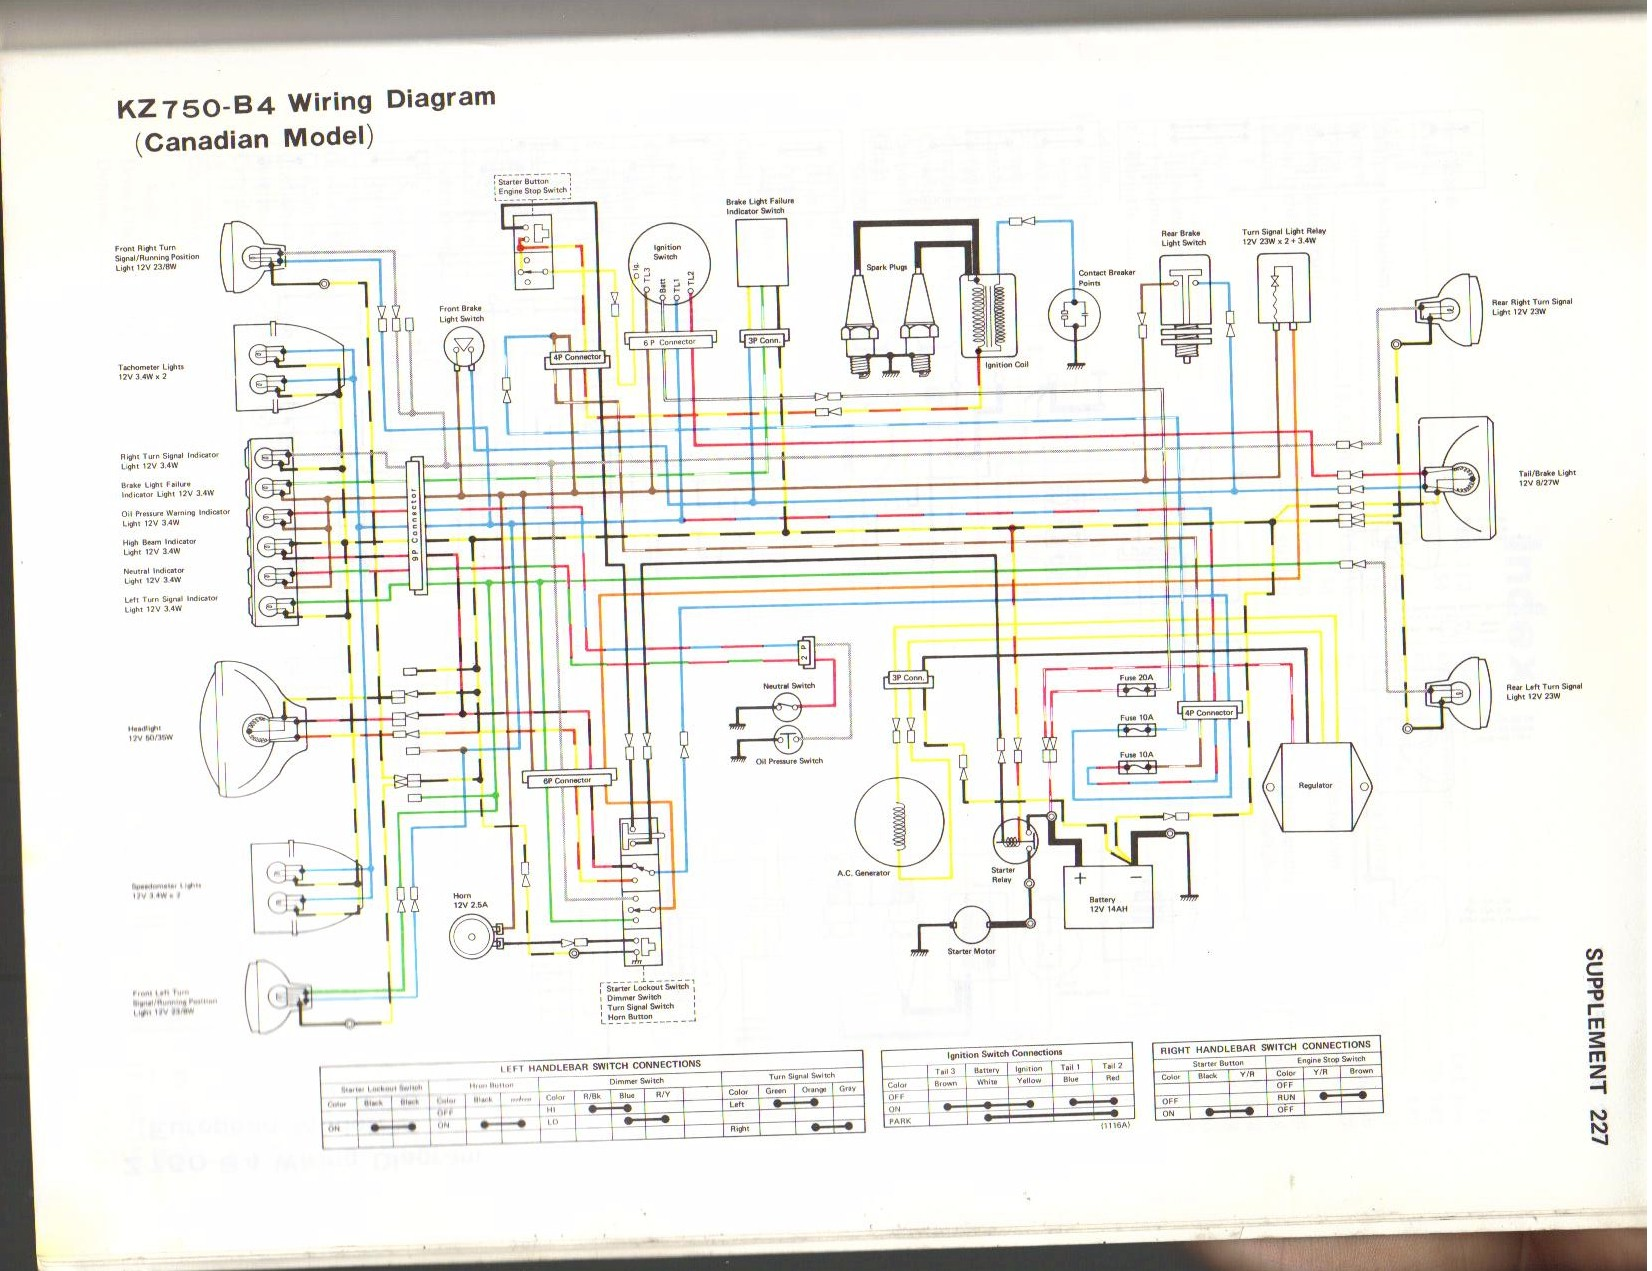 hight resolution of kz750 80 wiring diagram wiring diagrams kz750 80 wiring diagram wiring diagram fascinating kz750 80 wiring